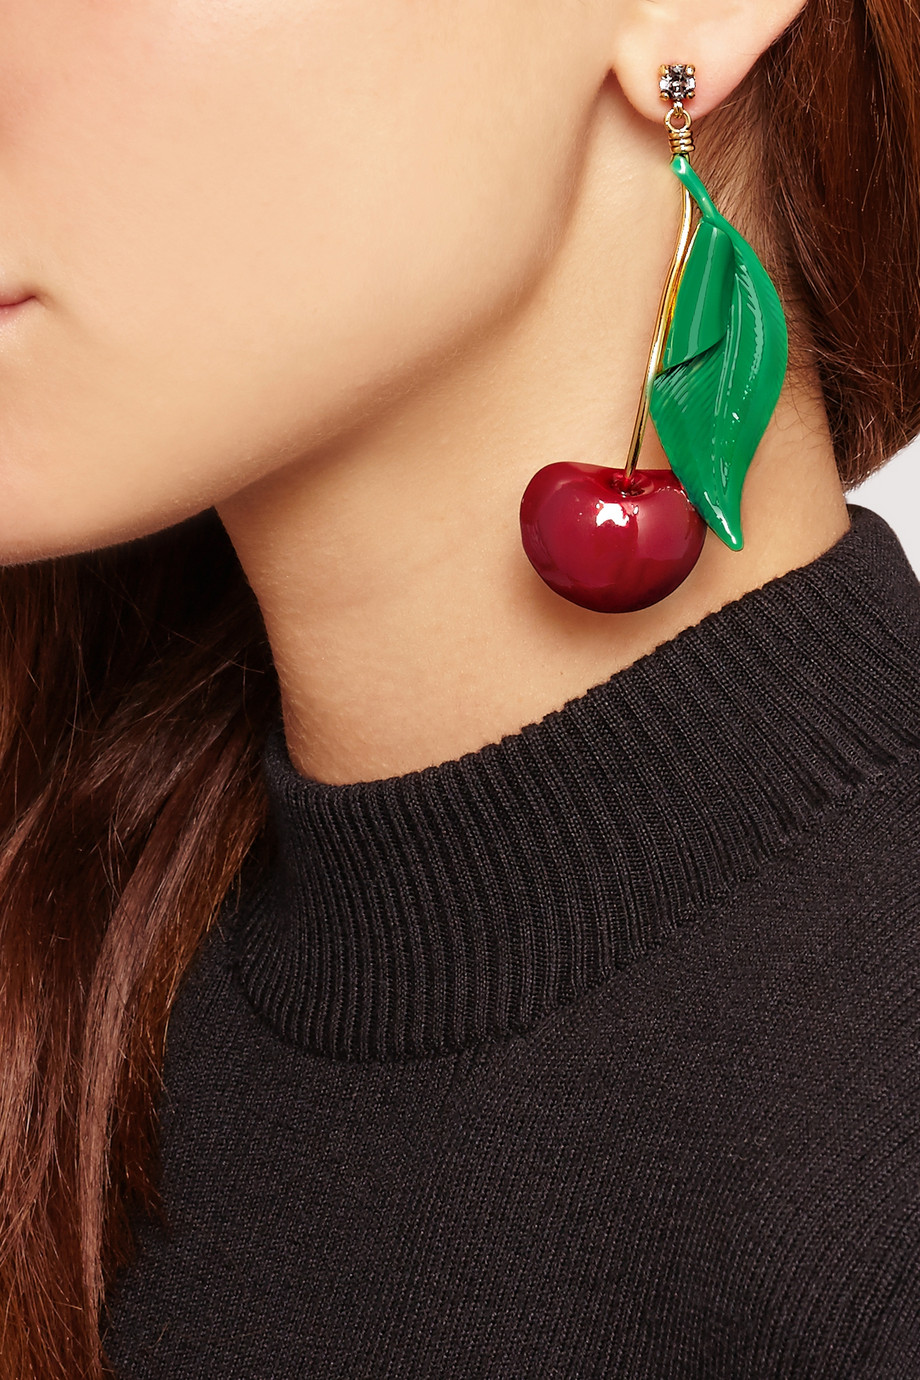 You can purchase these new cherry earrings by Erickson Beamon for $495- from  Net-A-Porter